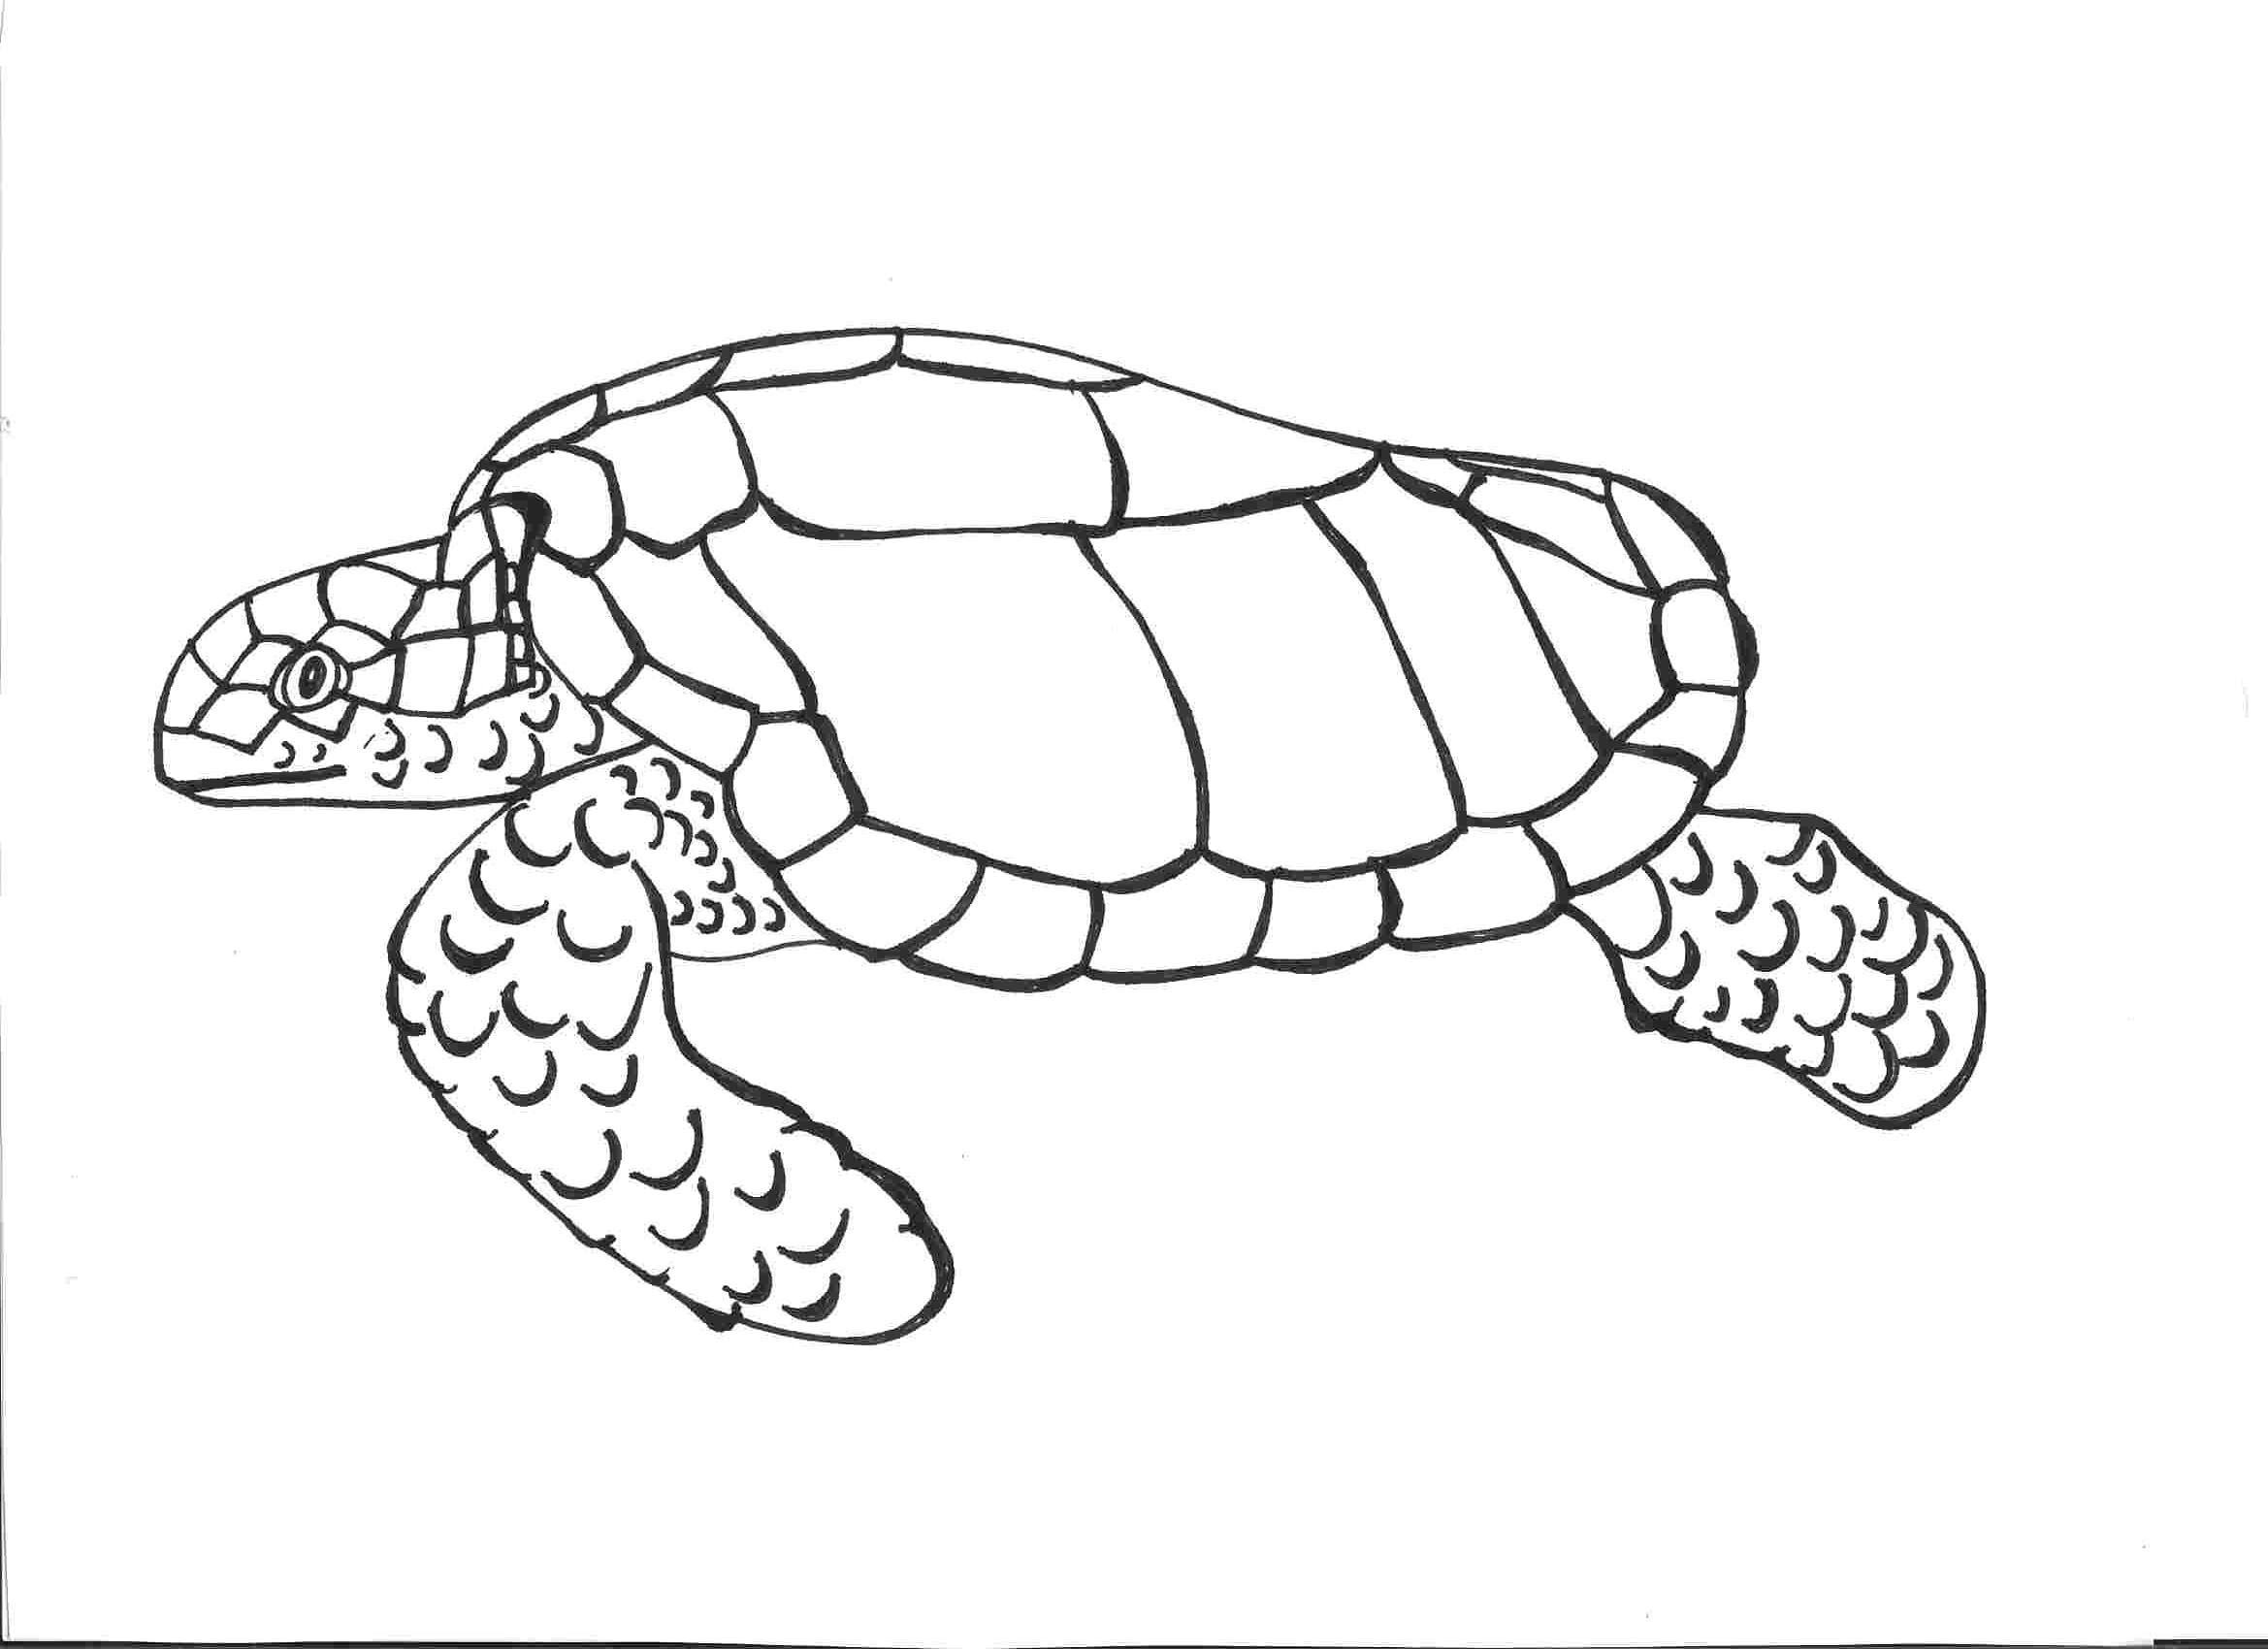 tortoise colouring pictures tortoise colouring pictures pictures tortoise colouring